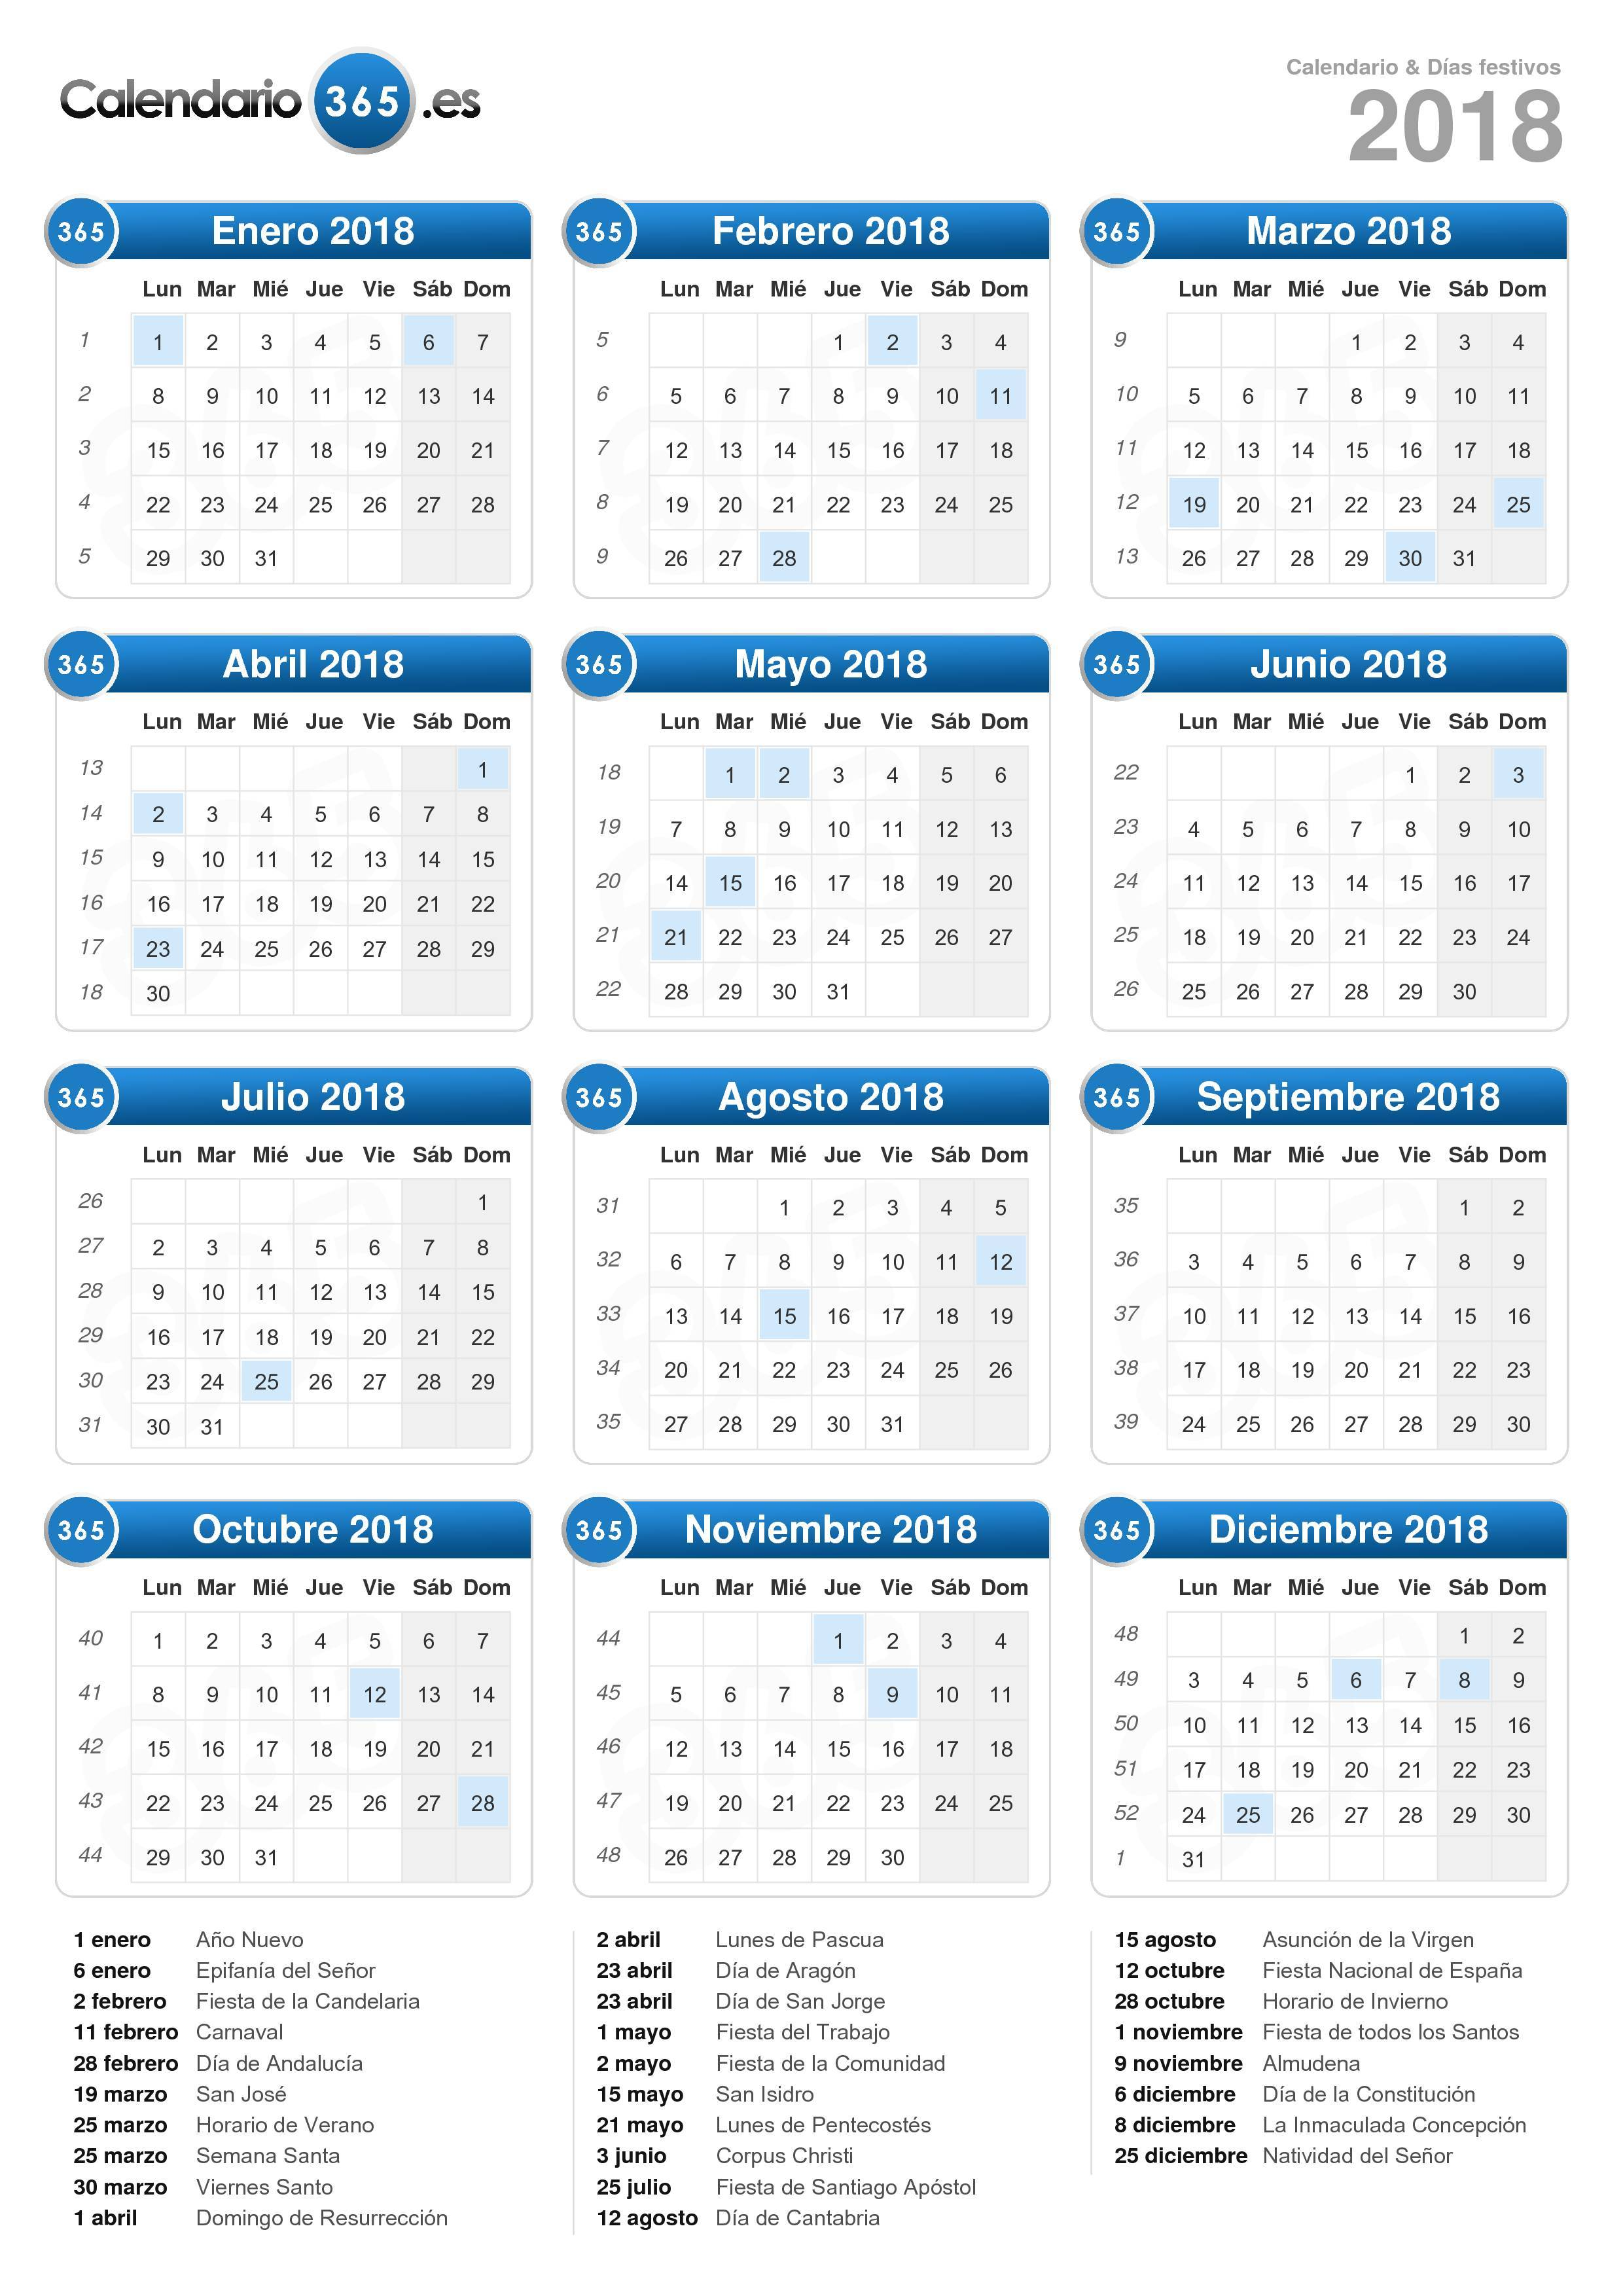 Calendario 2018 calendar template 2018 for Calendario eventos madrid